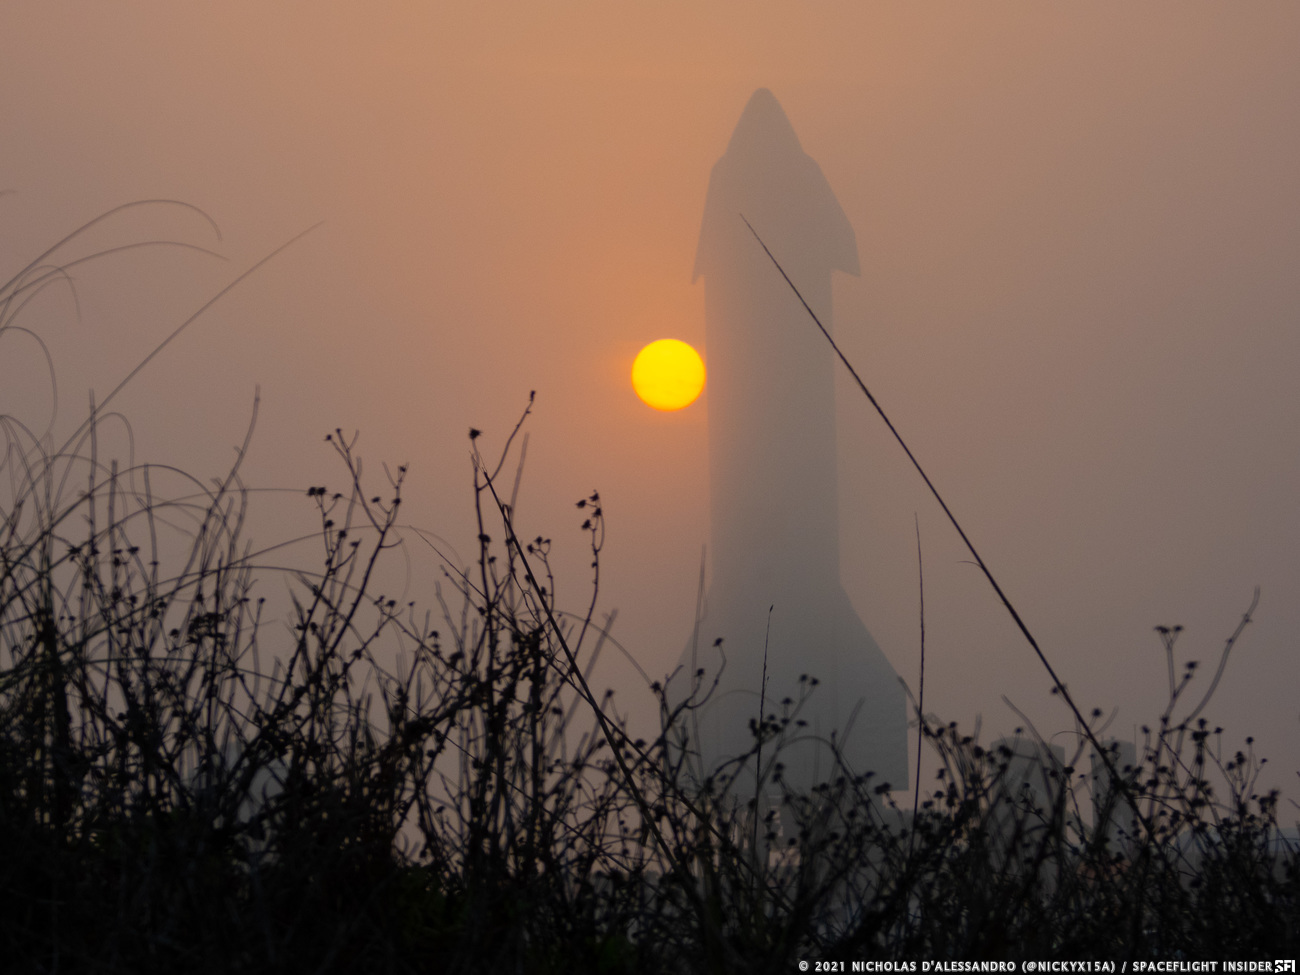 Starship SN10 from the beach dunes under a foggy sunset. Credit: Nicholas D'Alessandro / Spaceflight Insider